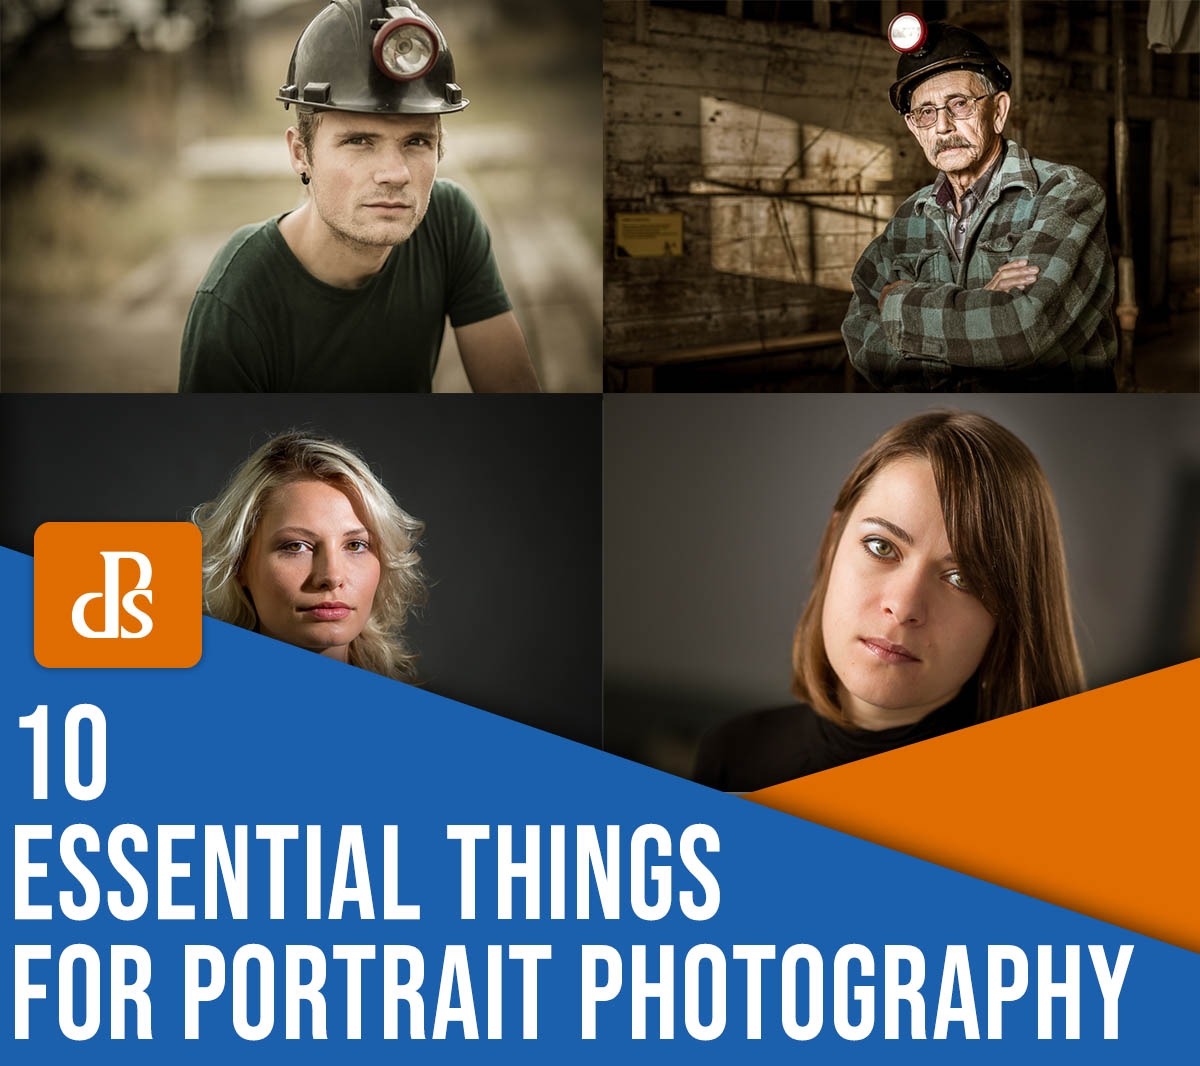 10 Essential Things to Think About for Portrait Photography